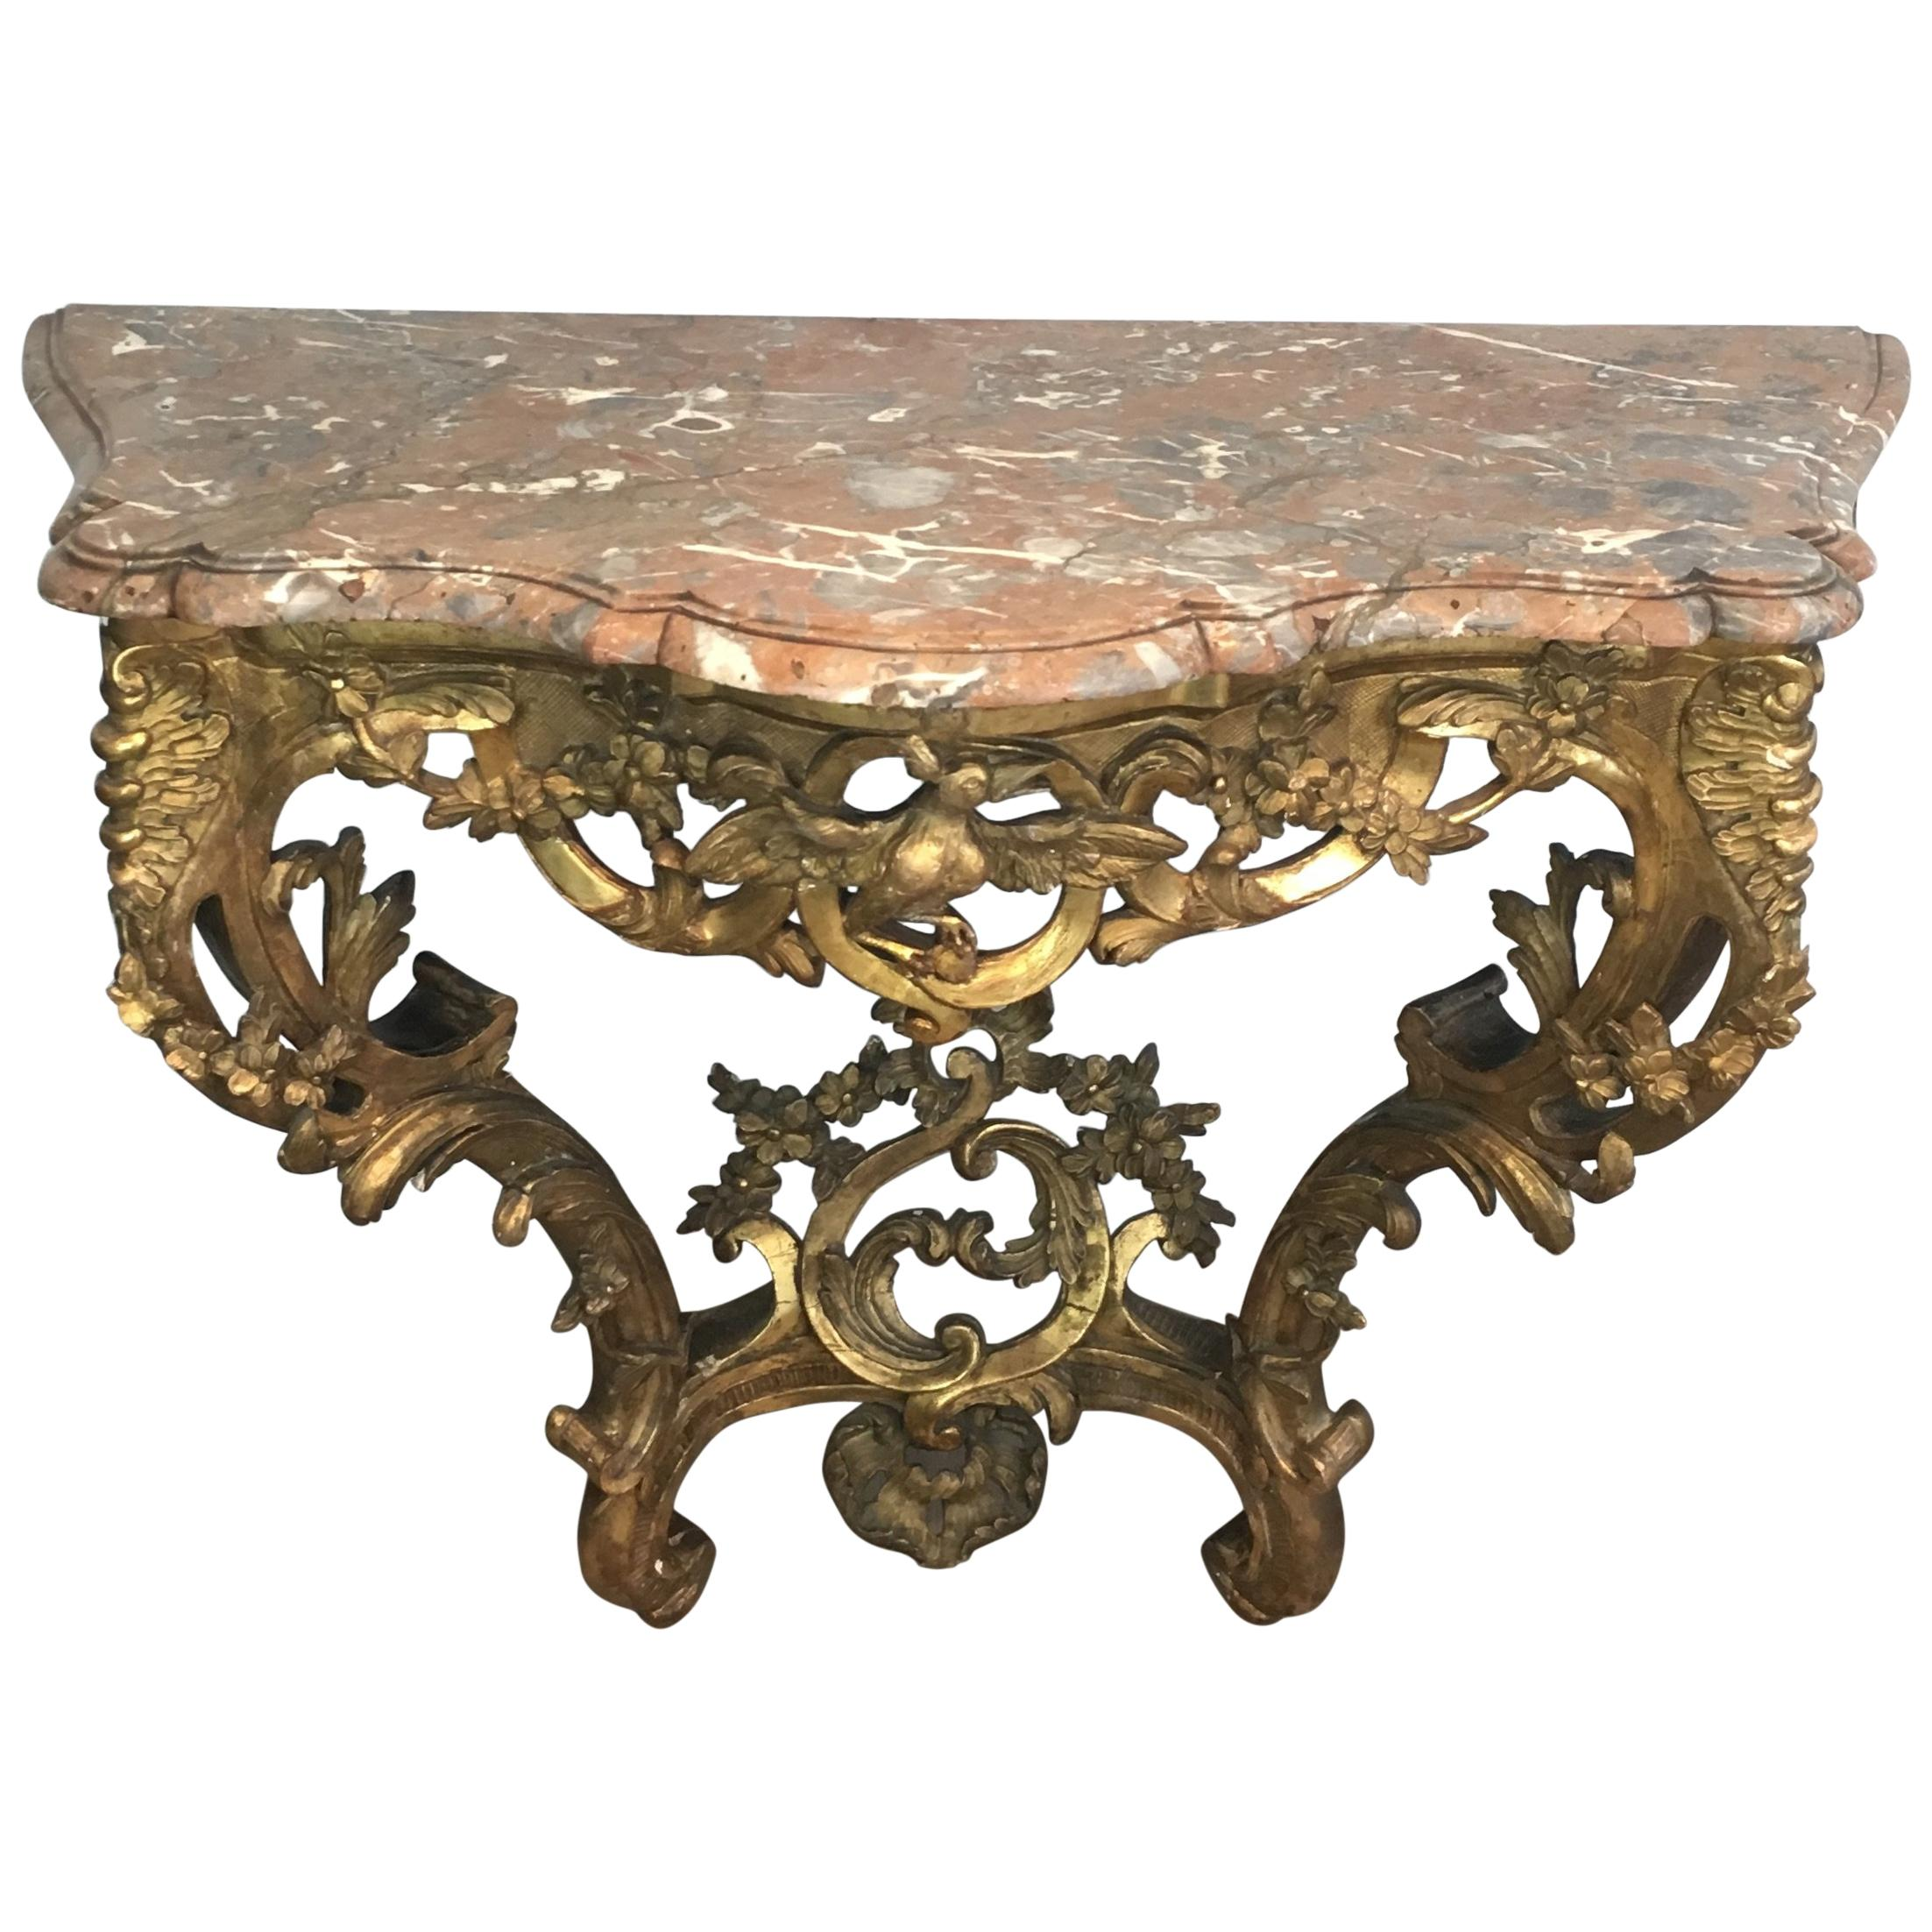 French 18th Century Giltwood Console Table with Red Marble Top, Louis XV Period